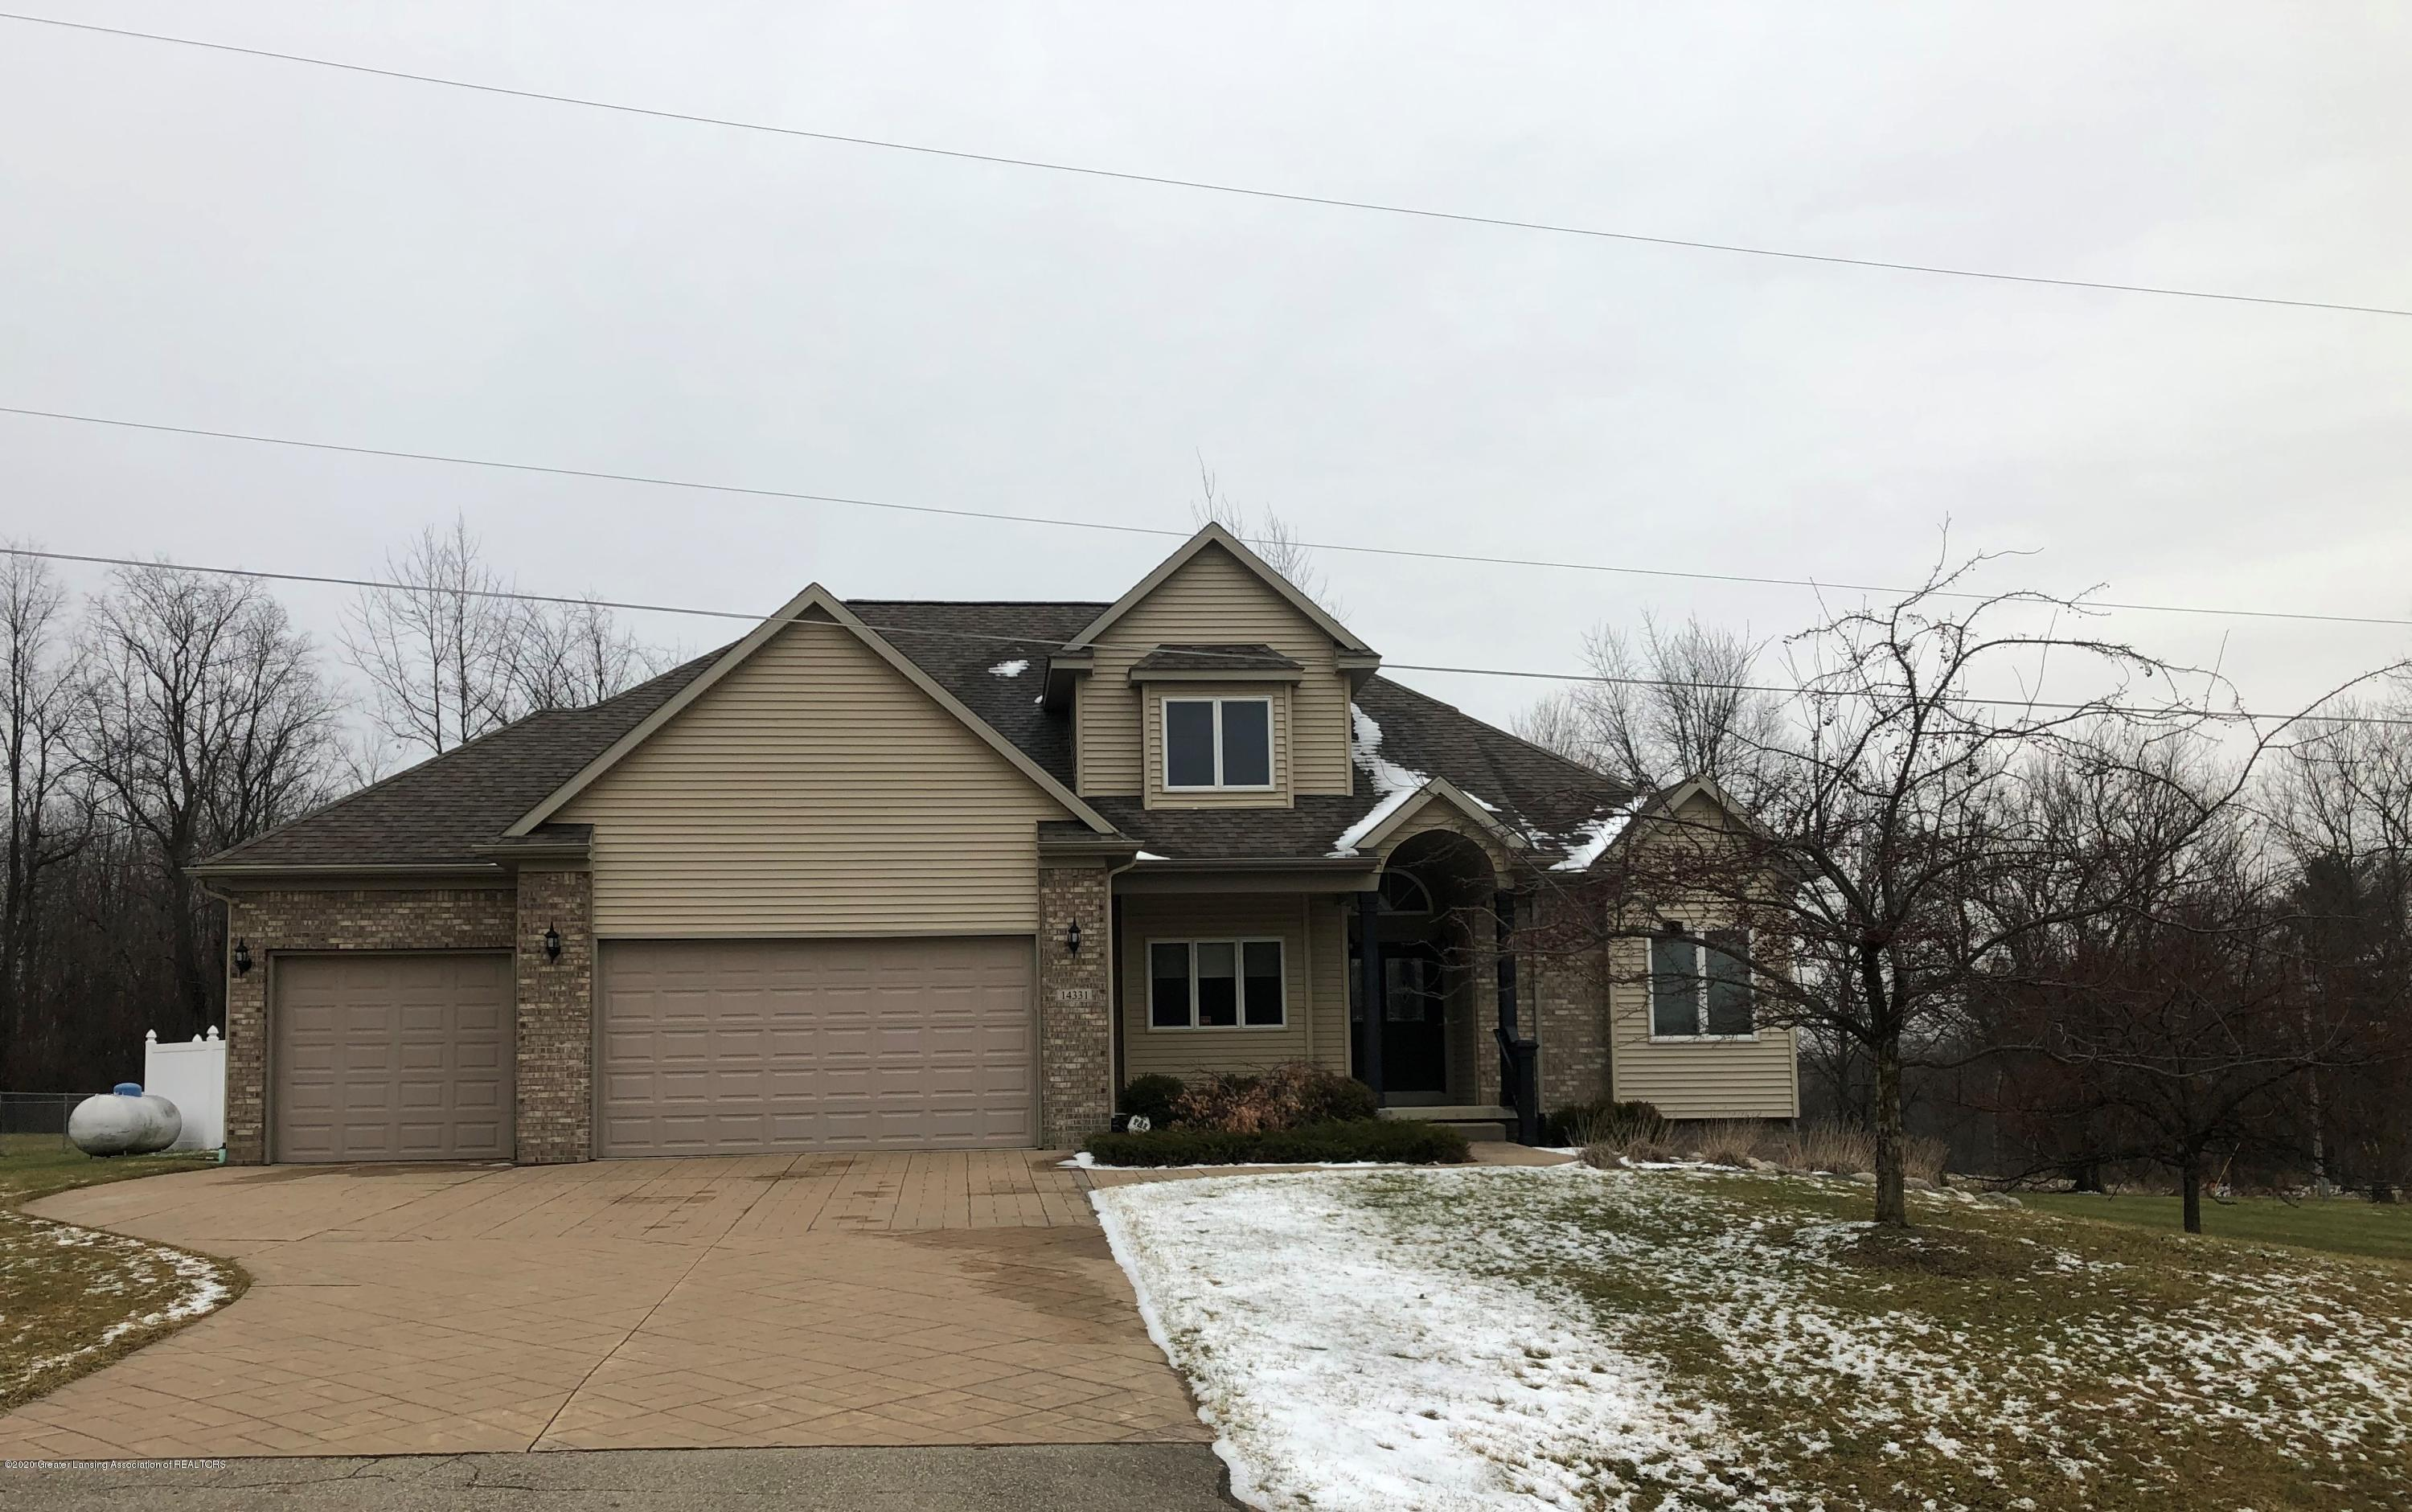 14331 S Kyle Rd - Kyle - 1